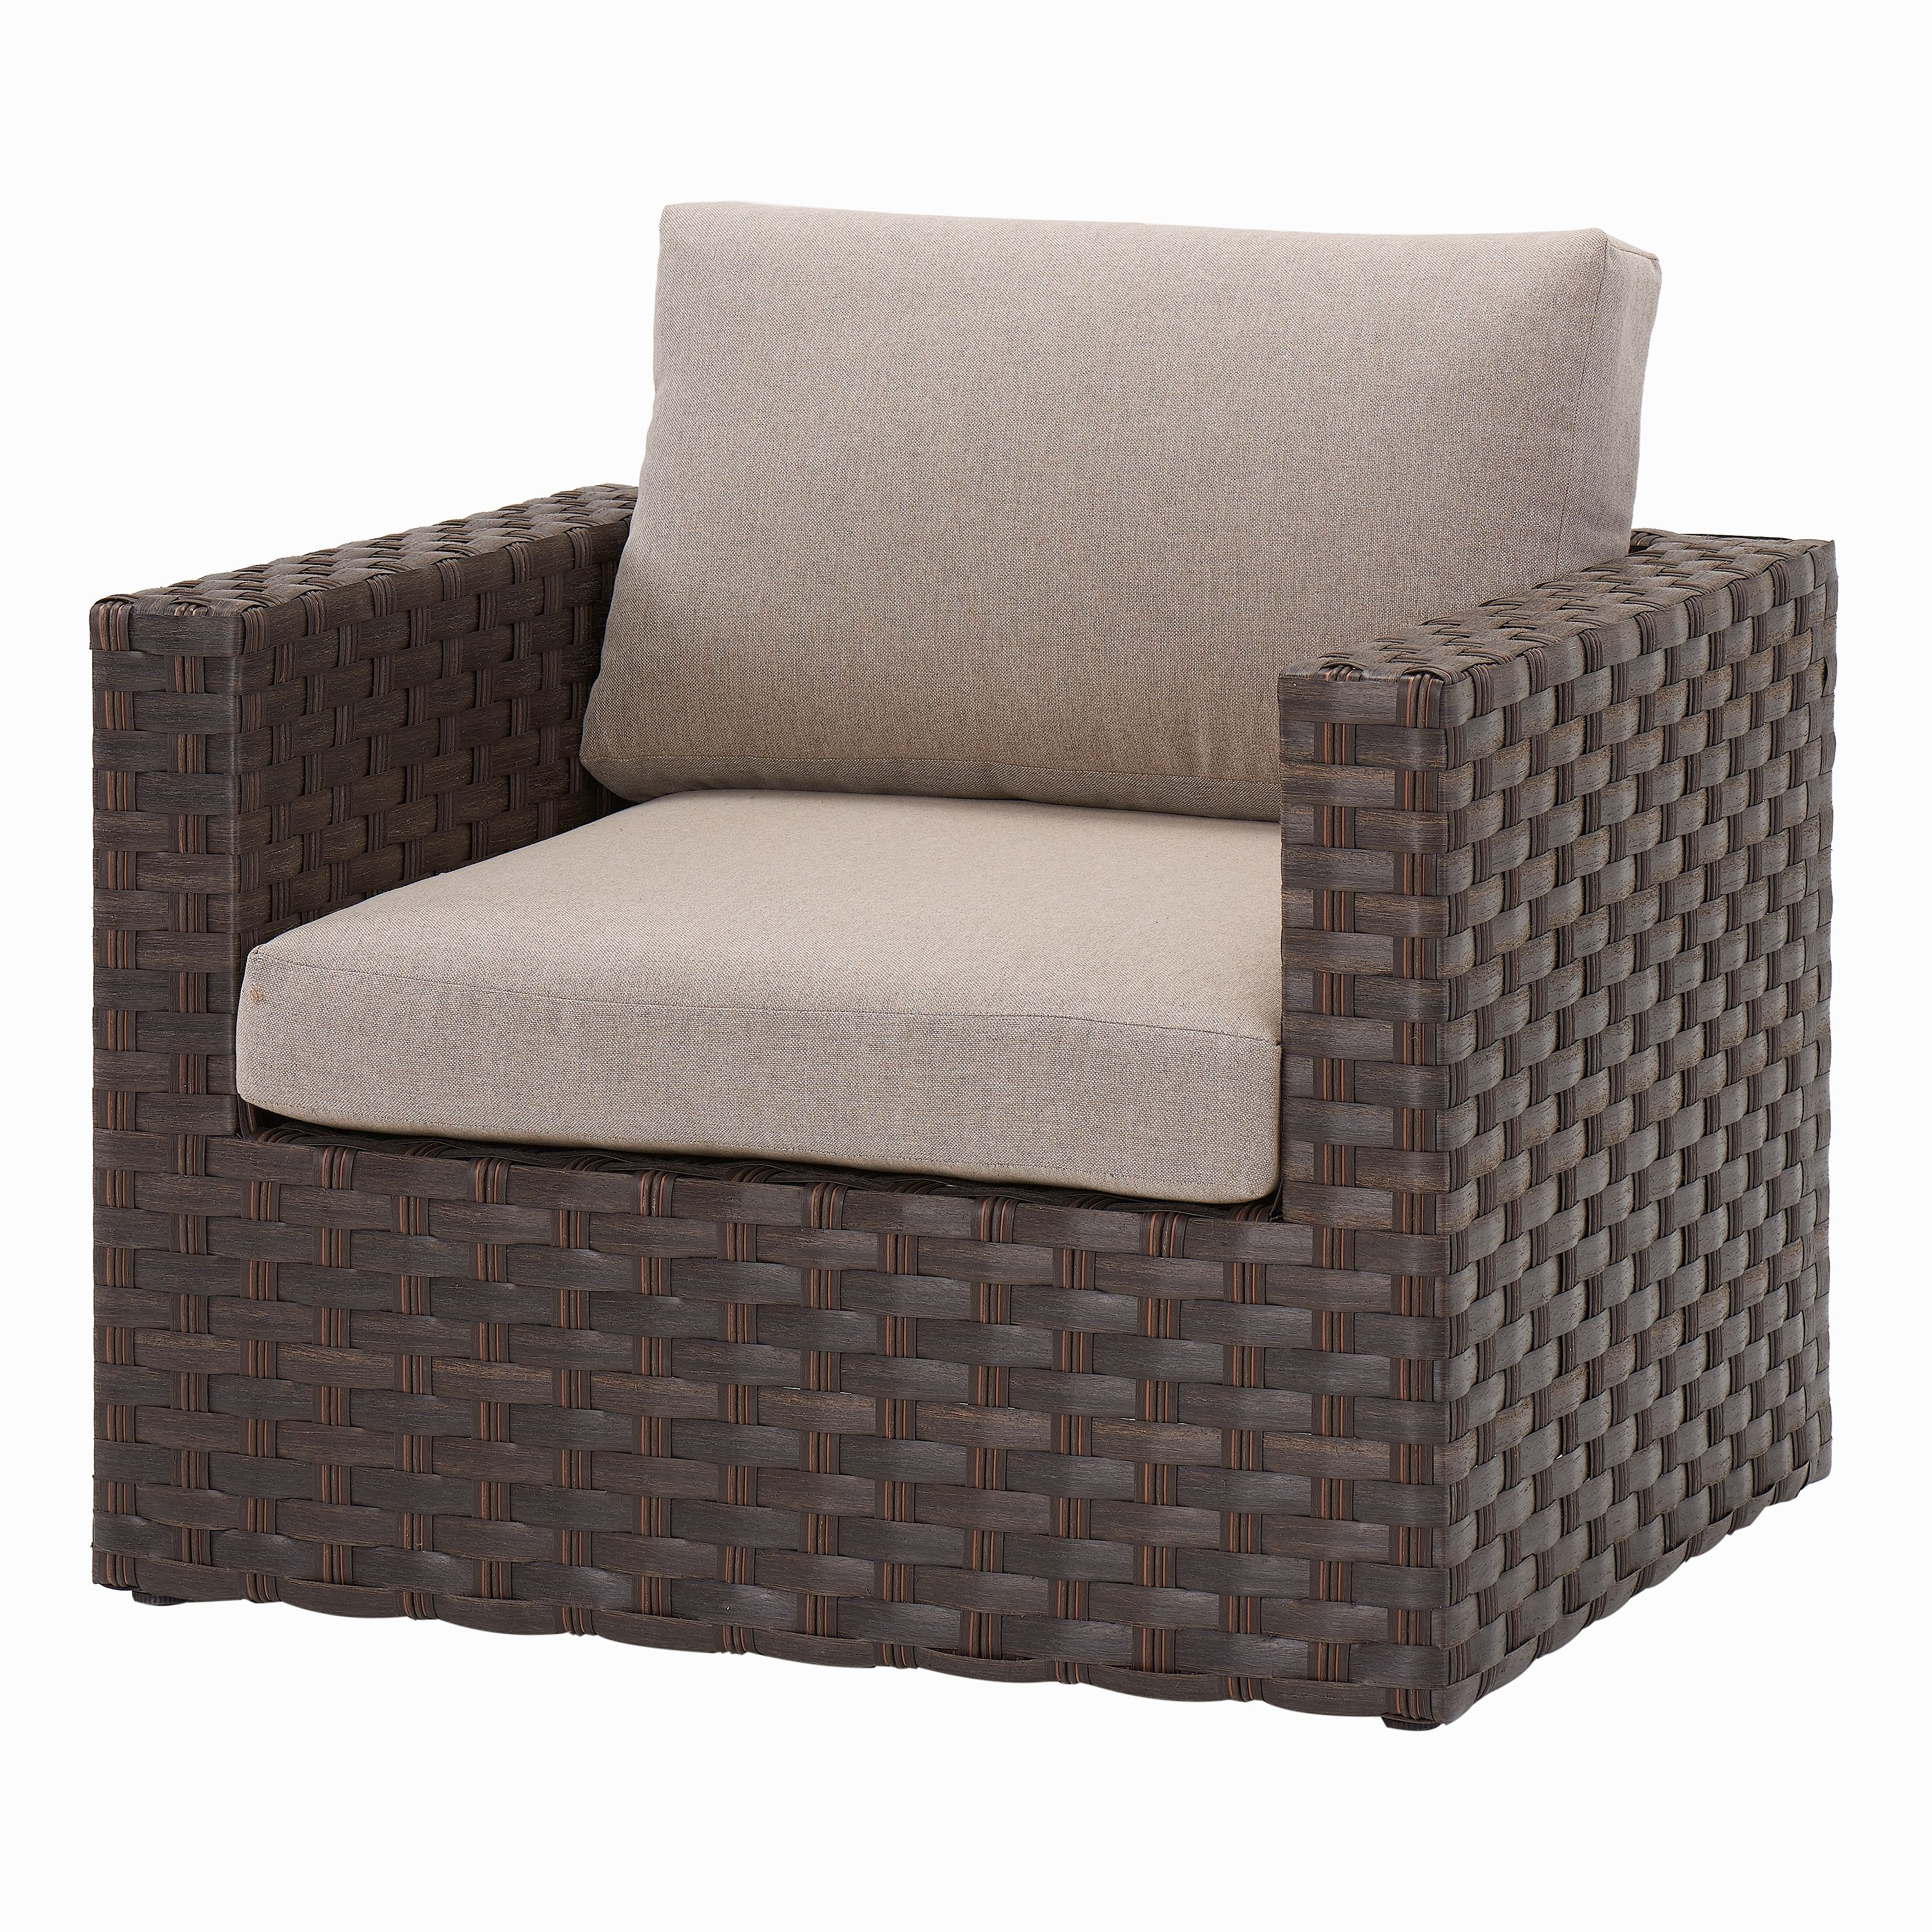 Better Homes & Gardens Harbor City 2-Piece Patio Lounge Chair Set with Beige Cushions